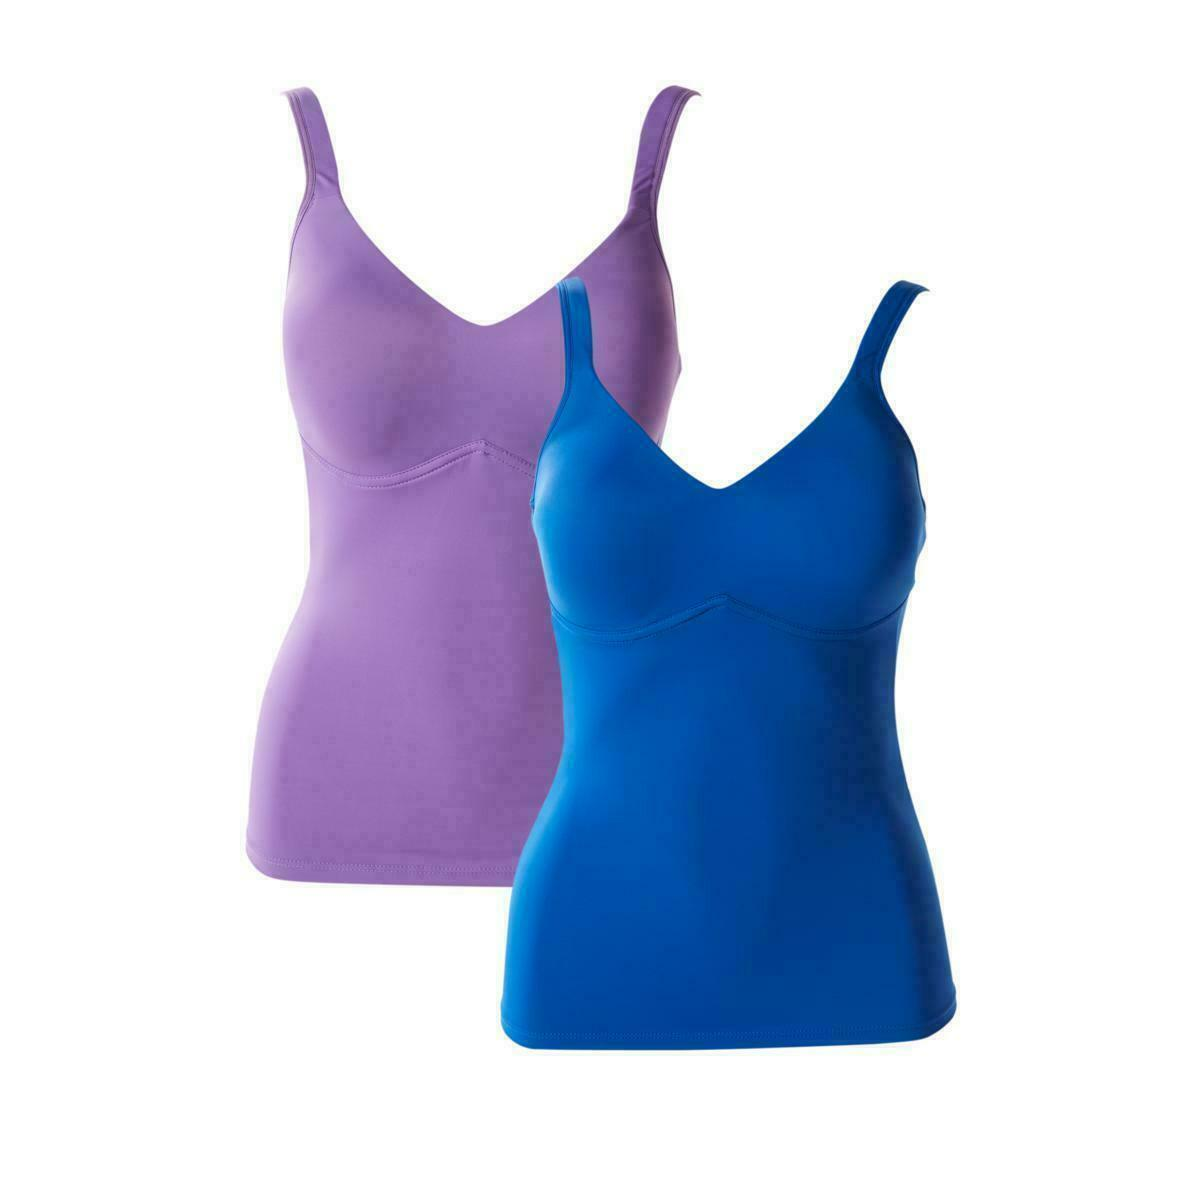 Rhonda Shear 2-Pack Everyday Molded Cup Camisole, Purple/Blue, Medium